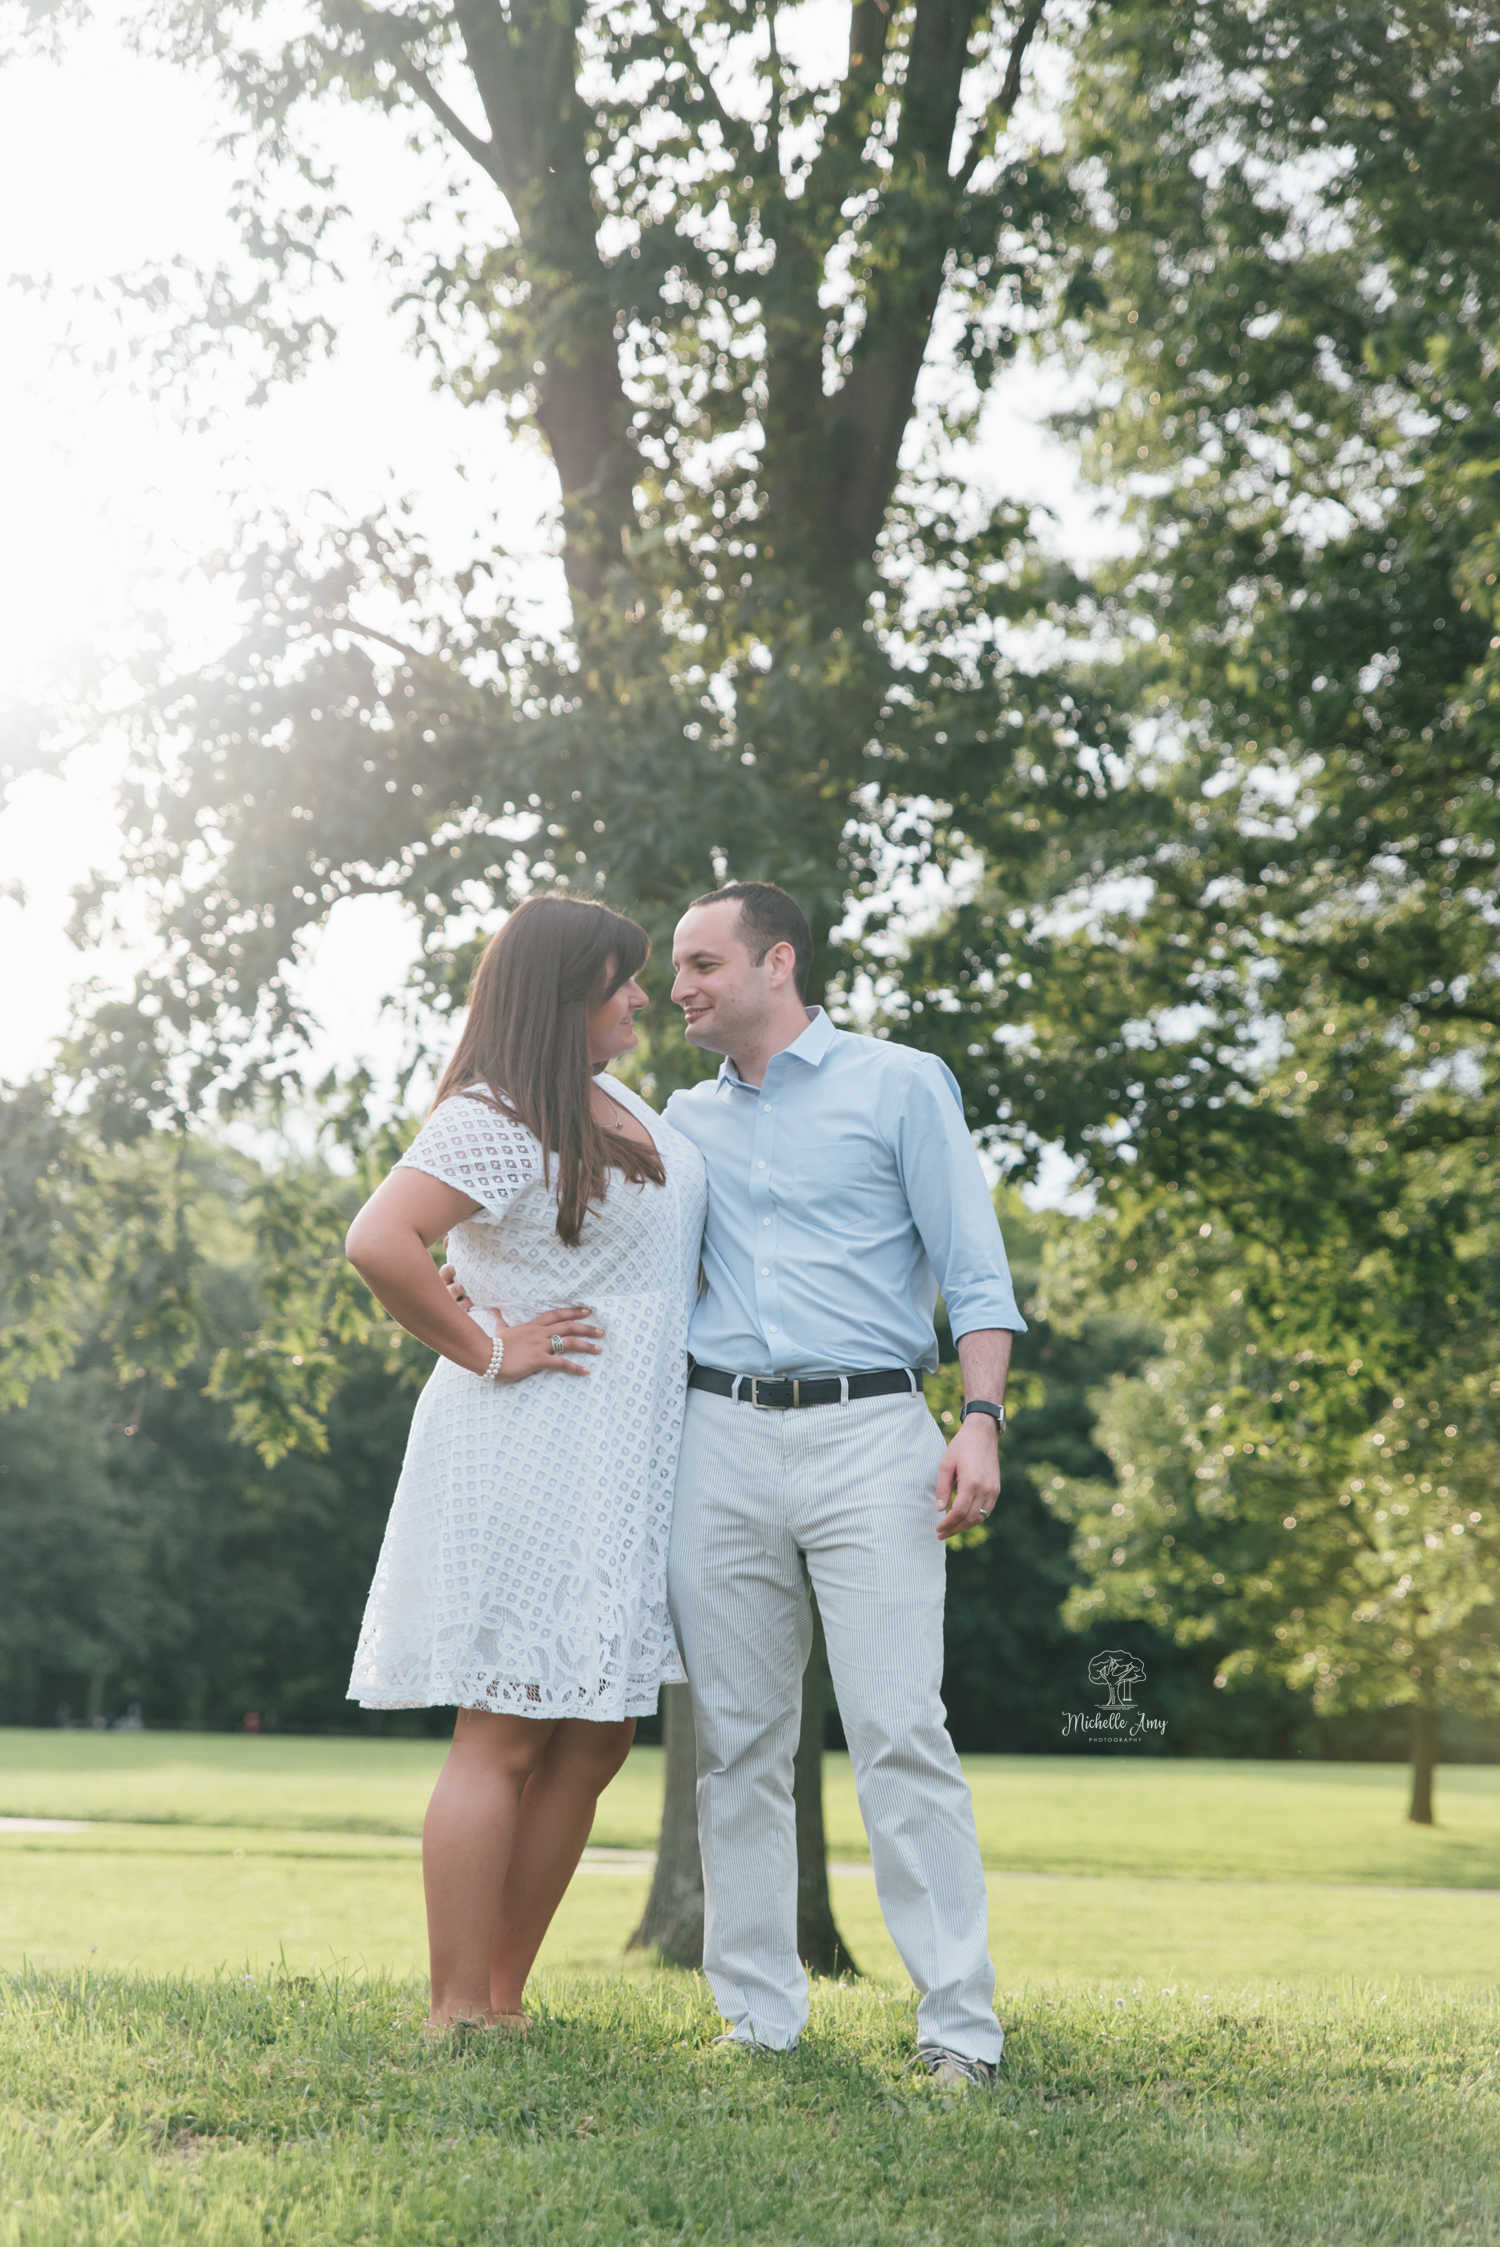 Holmdel New Jersey Family Portrait Photography